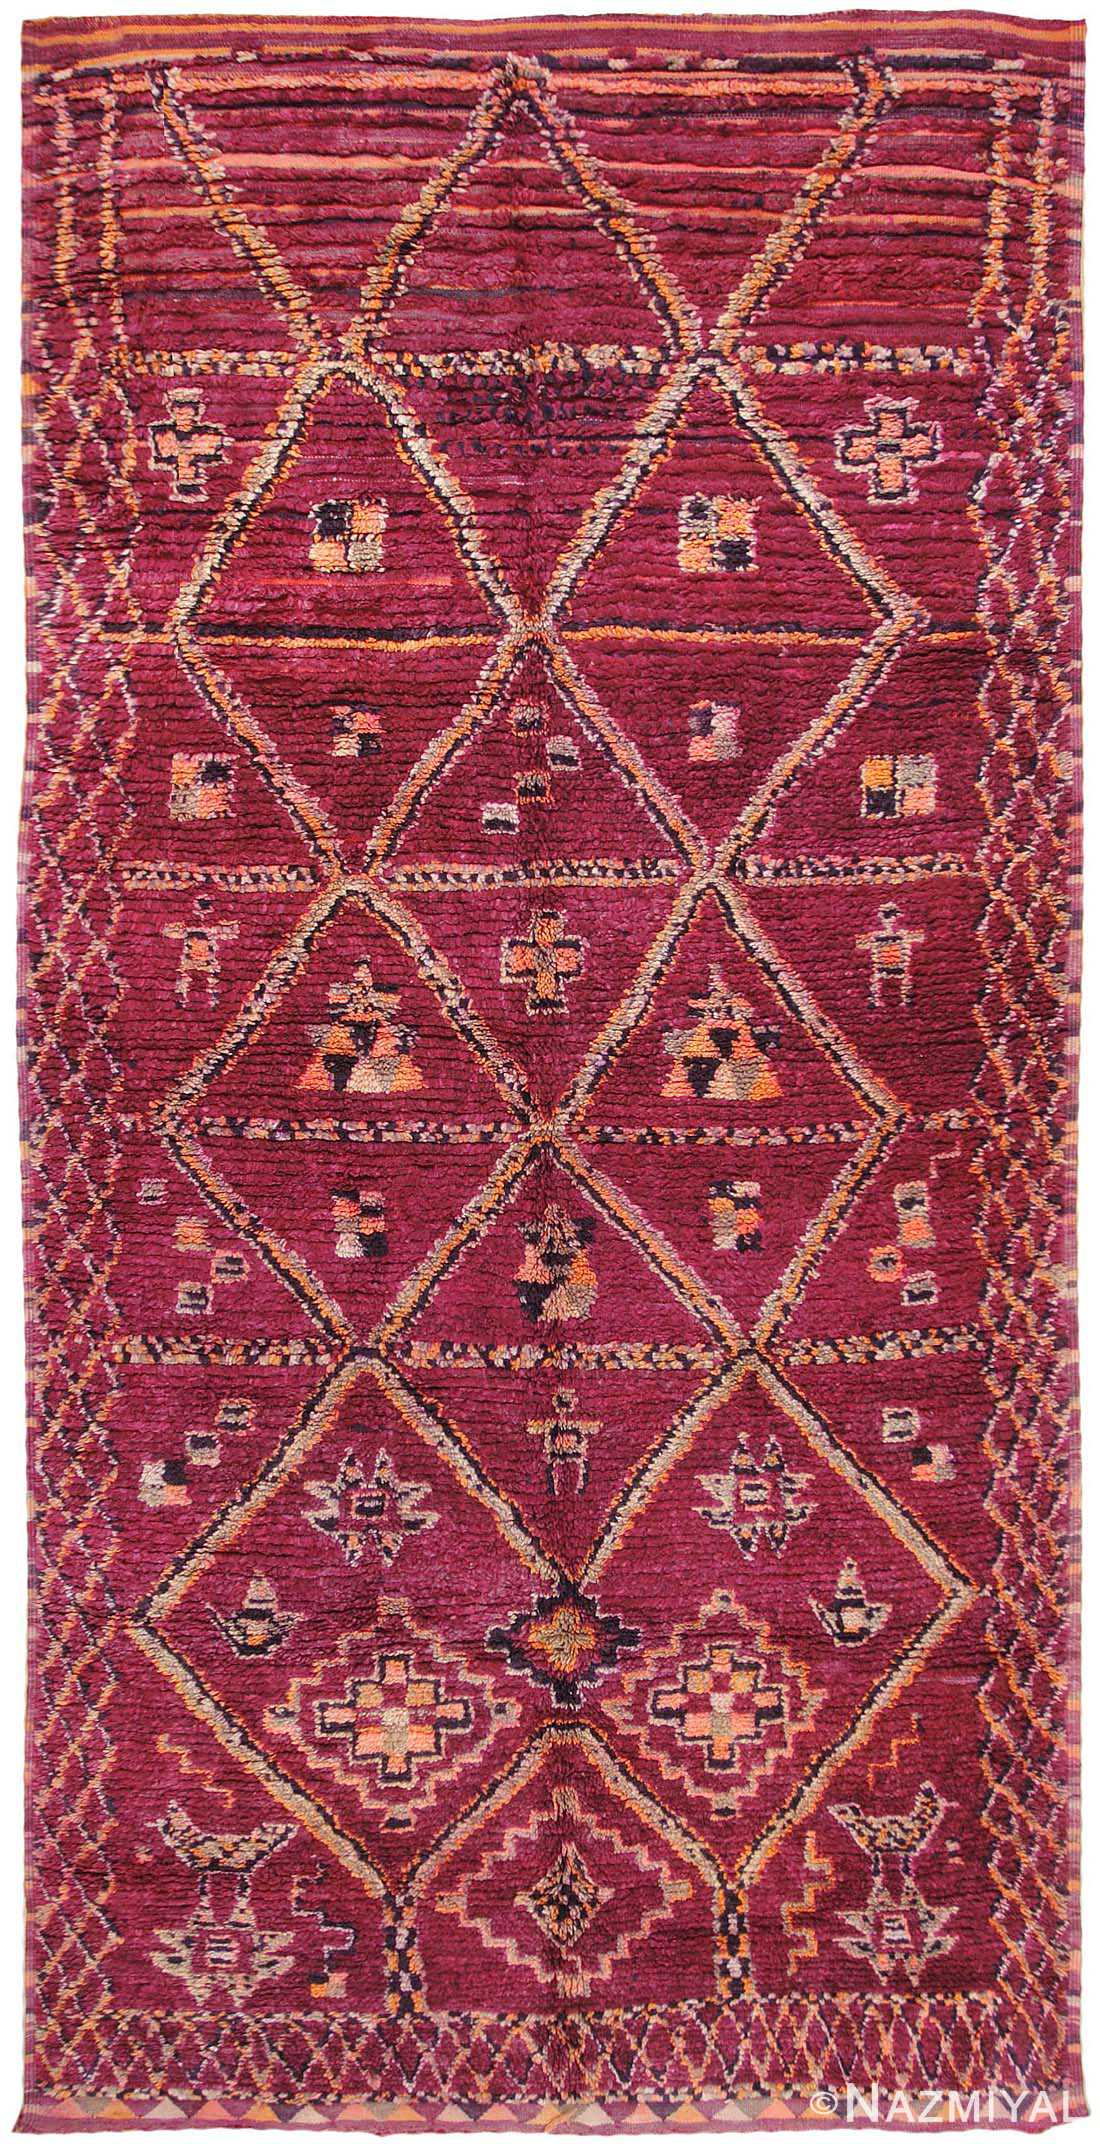 on main undercoverruglover a for arrivals no rug afghan year tribal few gorgeous sale rugs end now ca oriental paradise new at inc st sebastopol